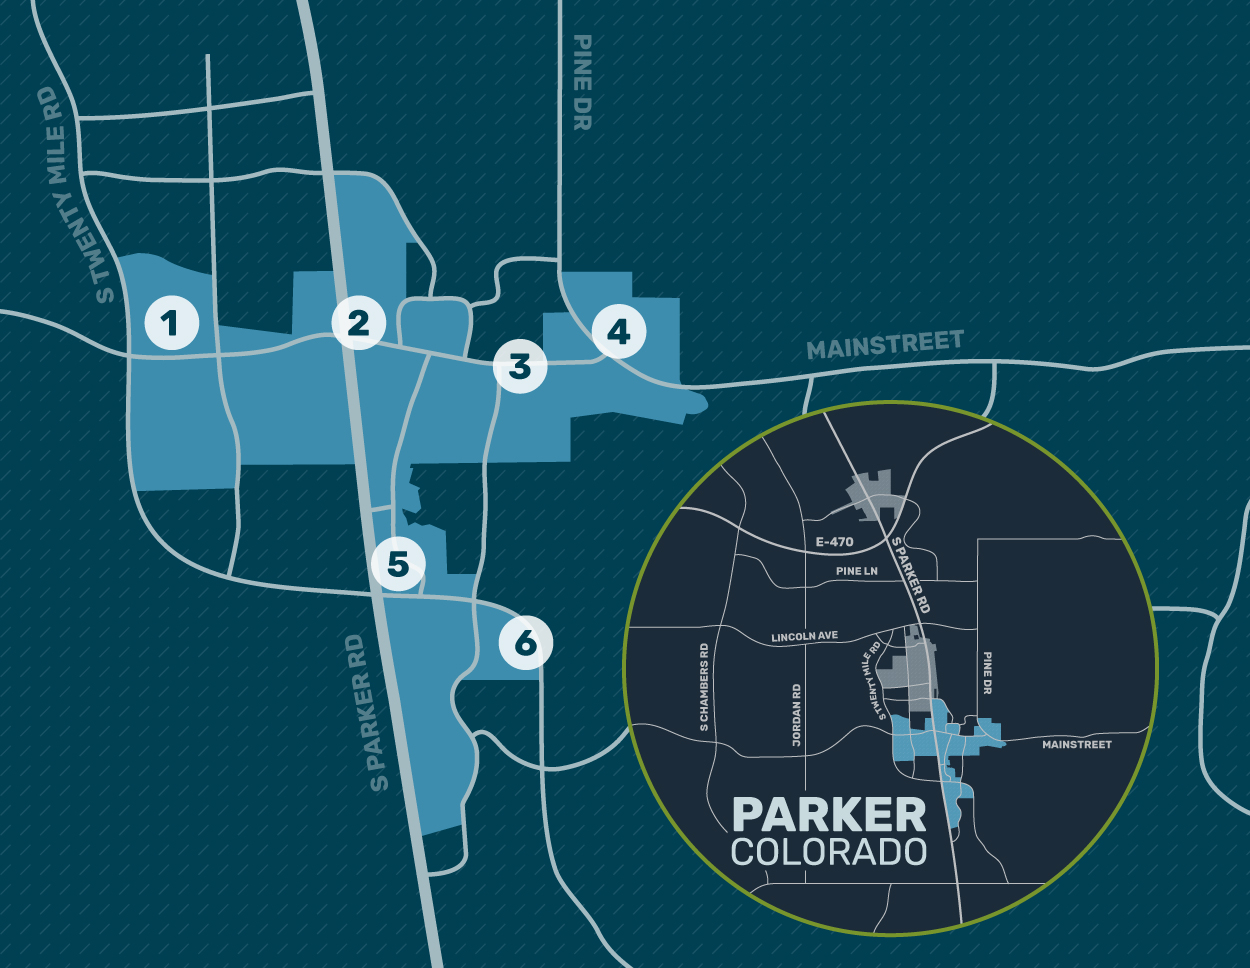 CATALYST AREAS - 1. West Mainstreet2. Mainstreet & Parker Road3. Celebrated Mainstreet & Parker South4. Mainstreet & Pine Drive5. Hilltop6. Hilltop South